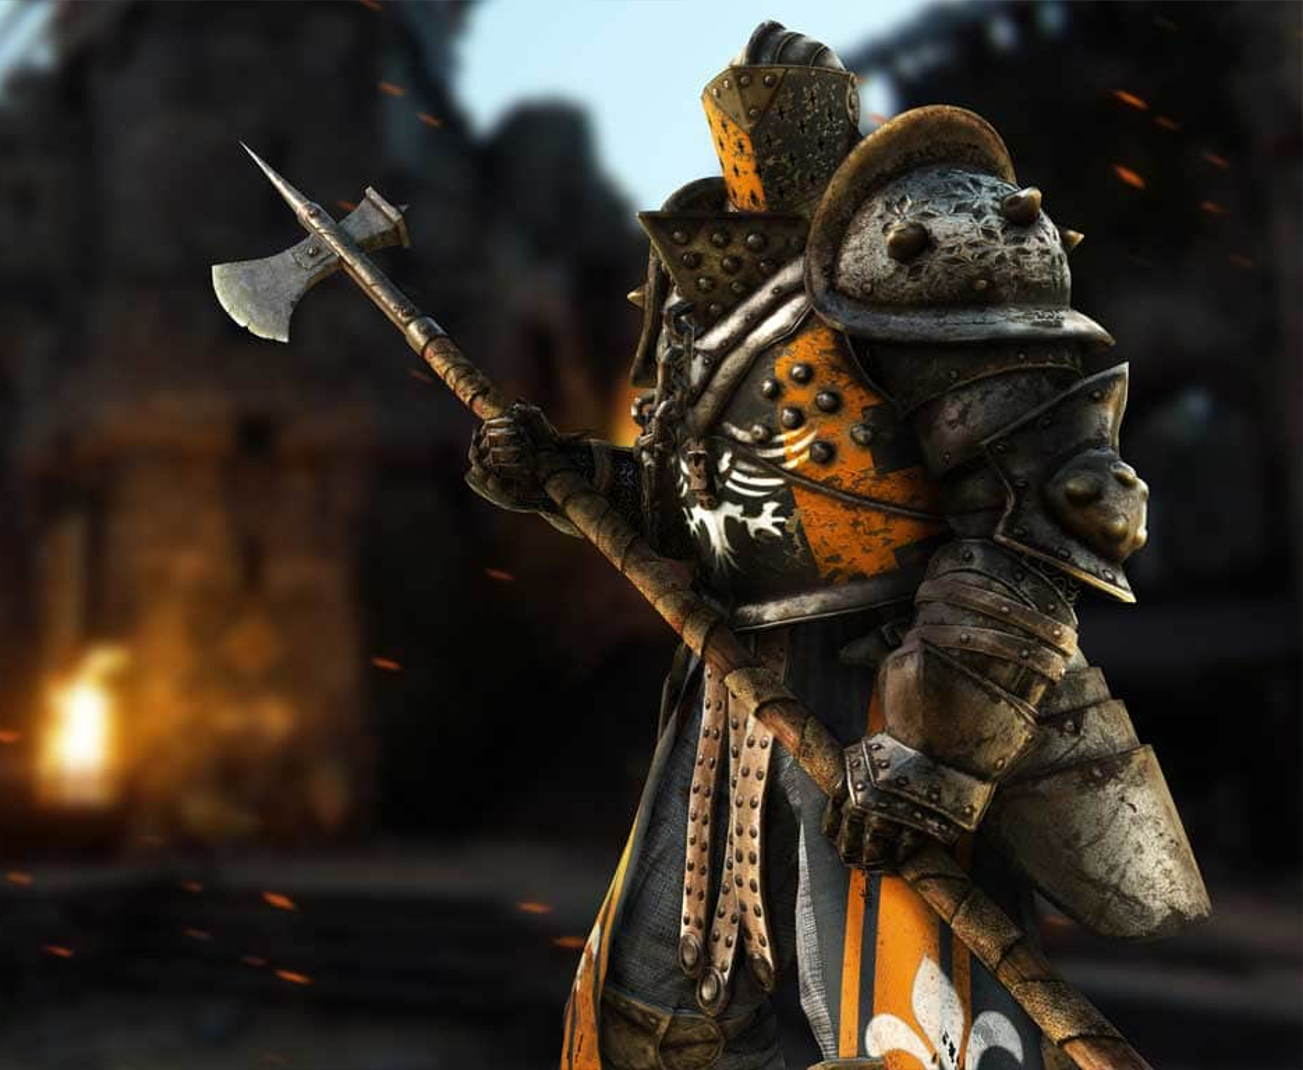 Lawbringer | For Honor Wiki | FANDOM powered by Wikia